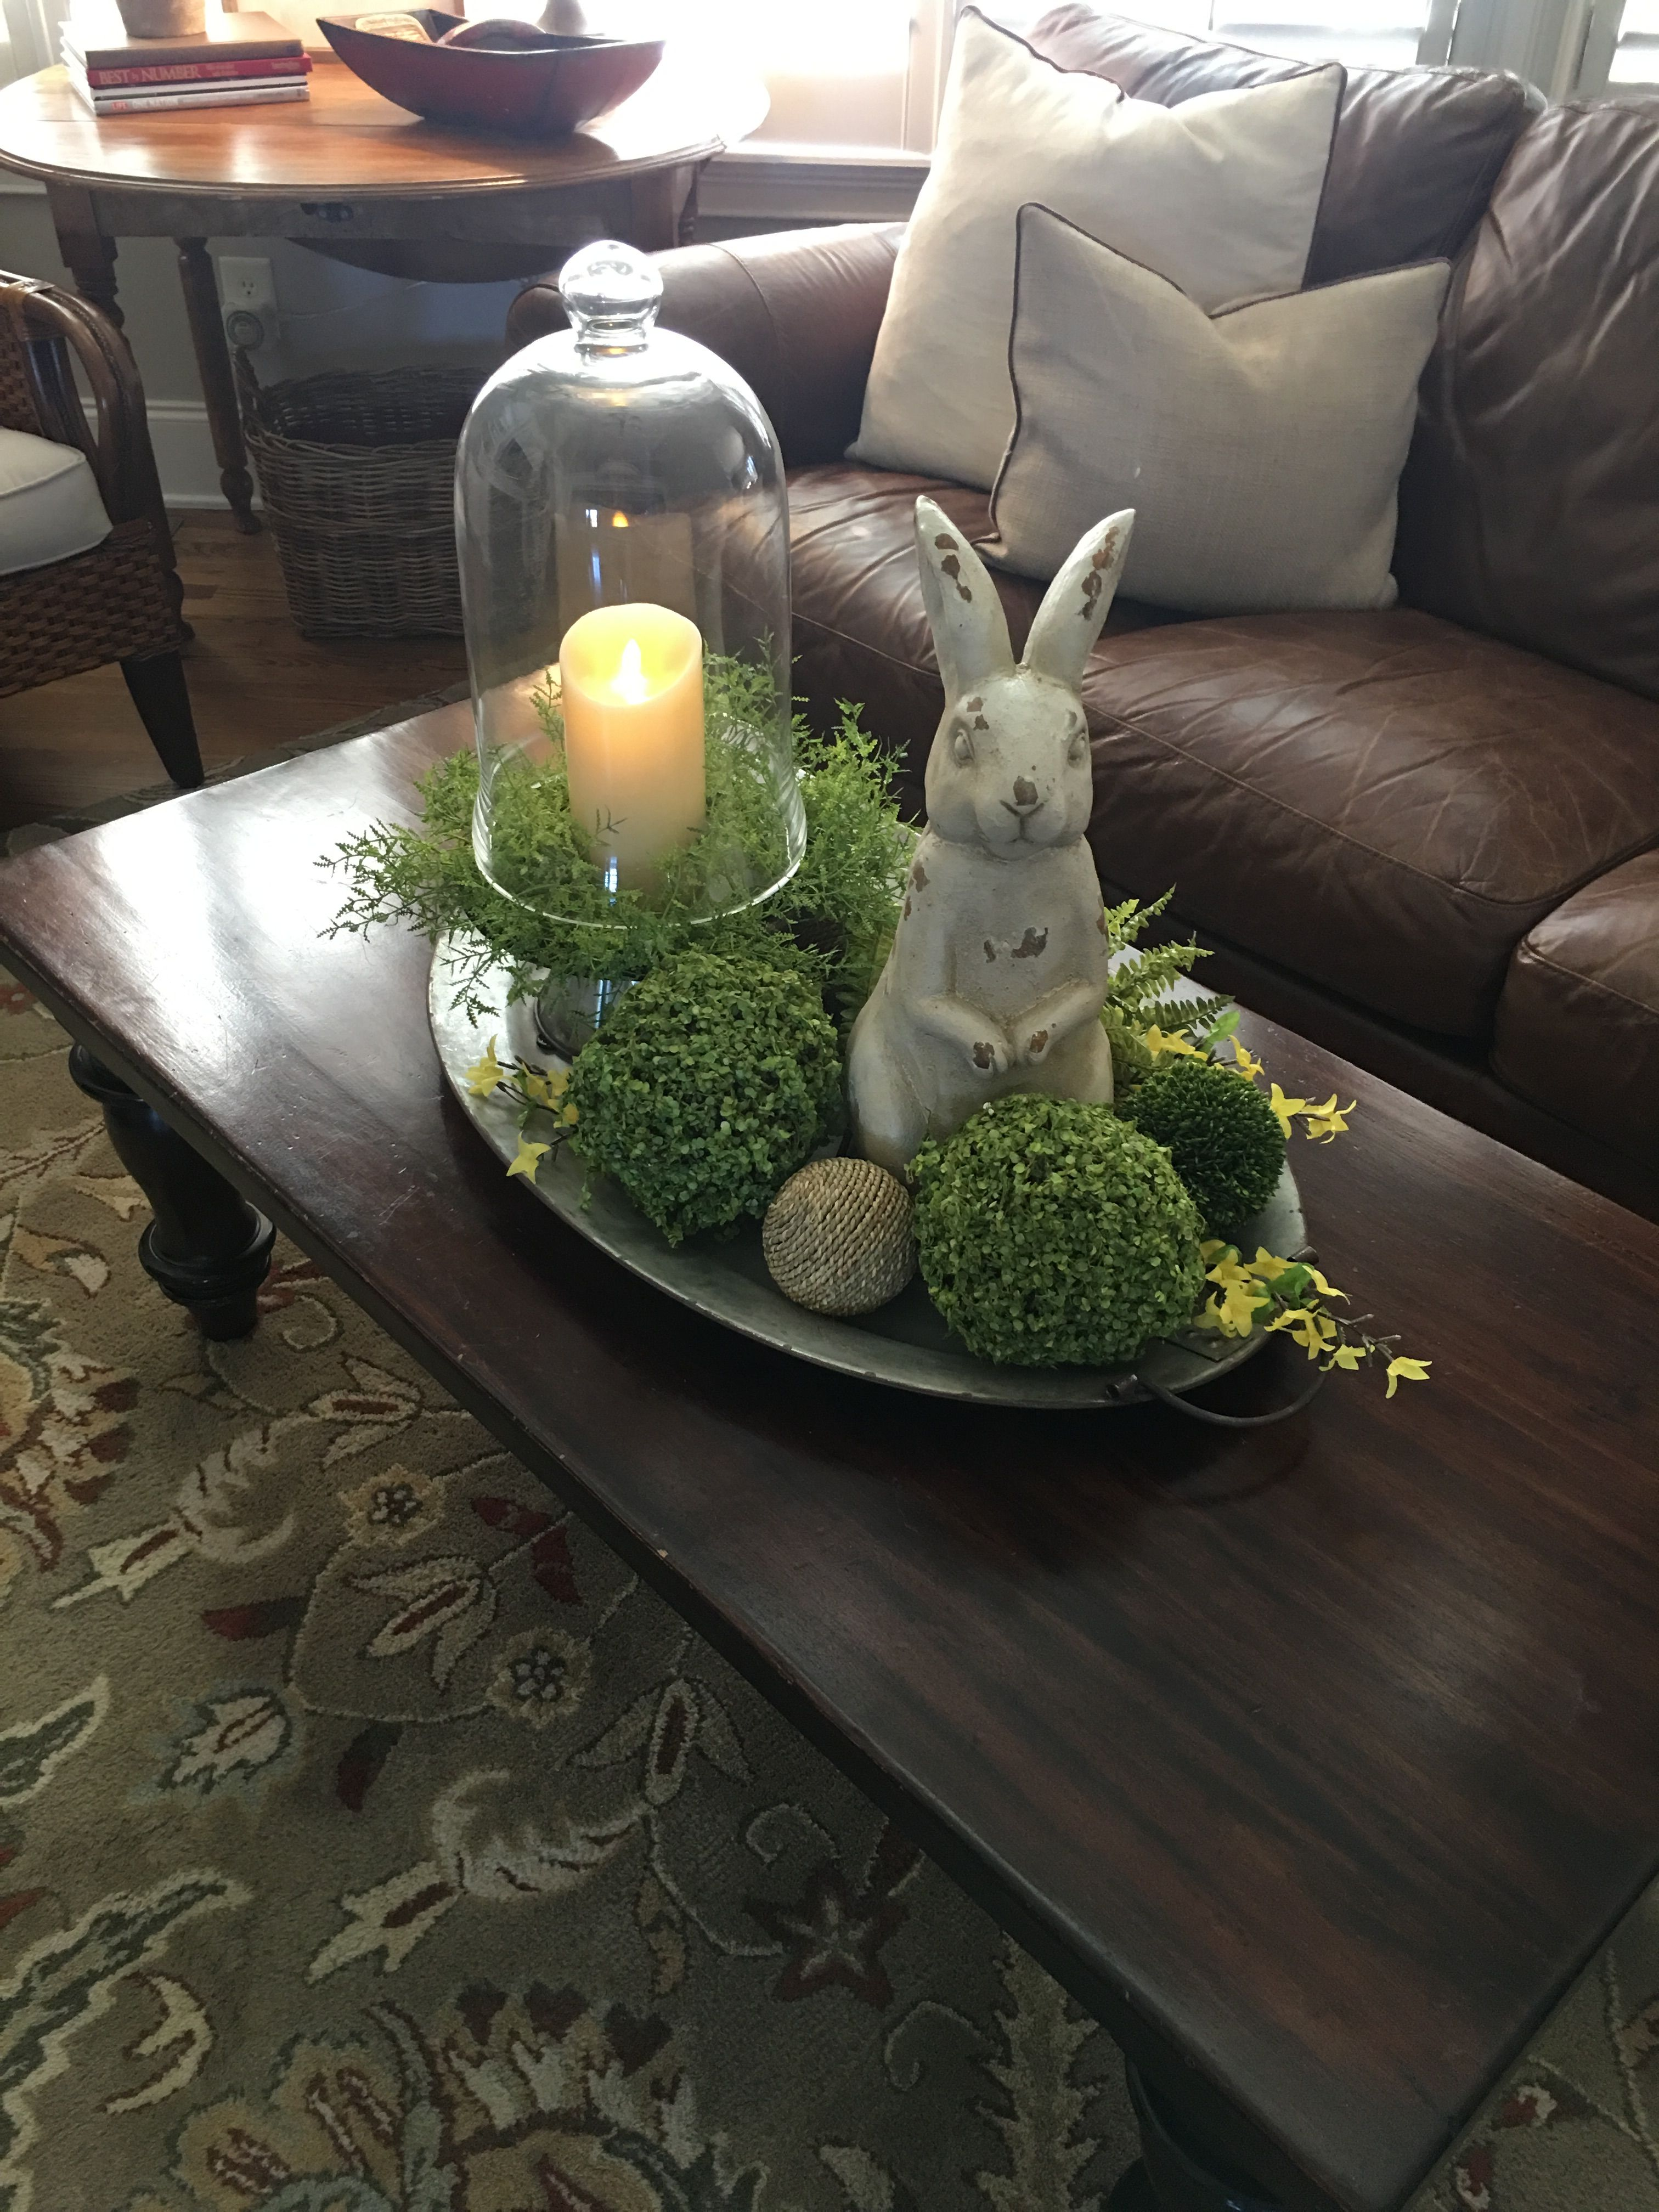 Coffee Table Tray I Made For Spring Spring Table Decor Spring Easter Decor Easter Decorations Dollar Store